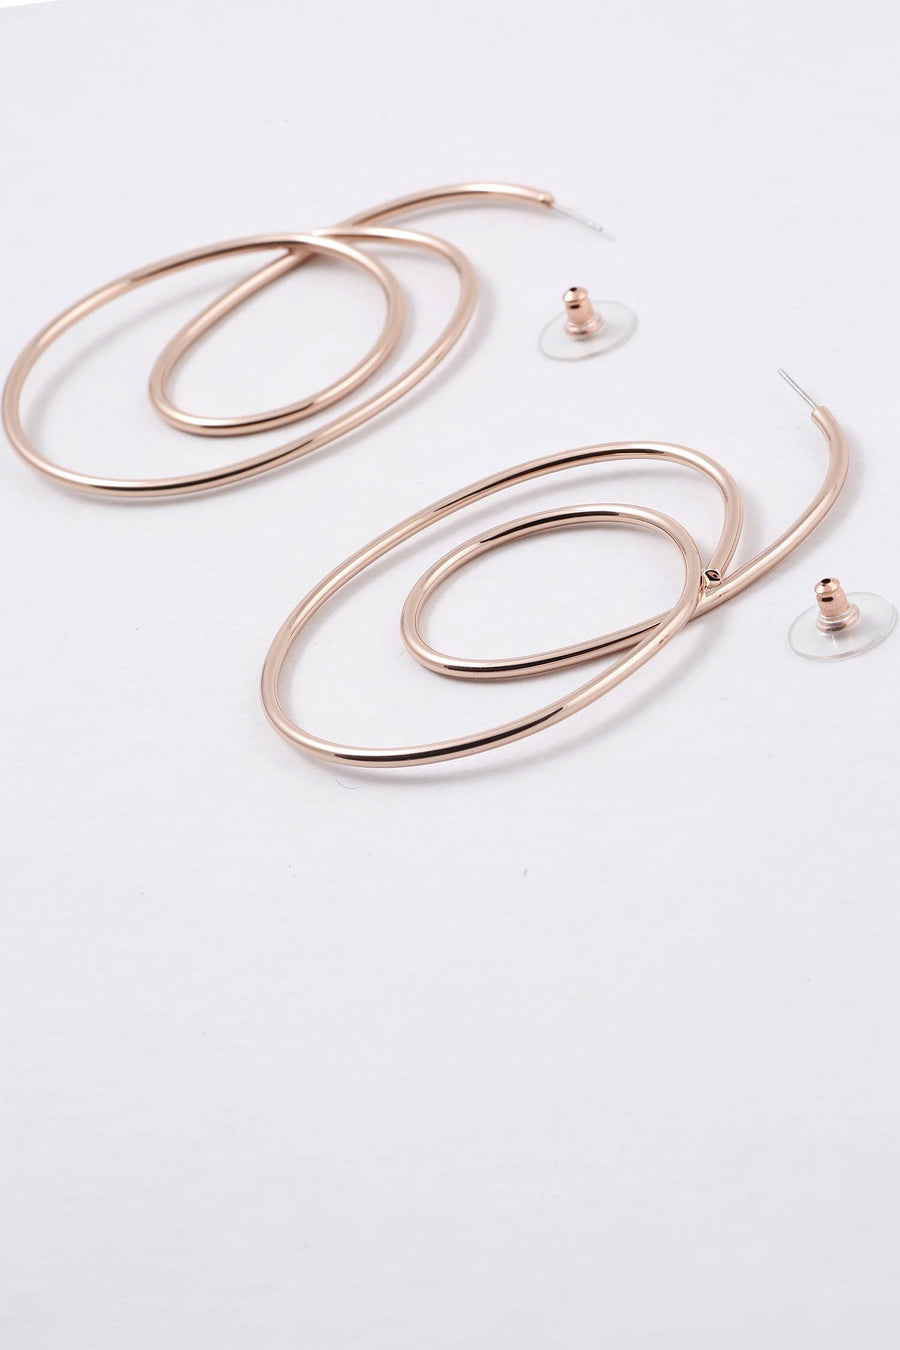 Mindil Earrings in Rose Gold